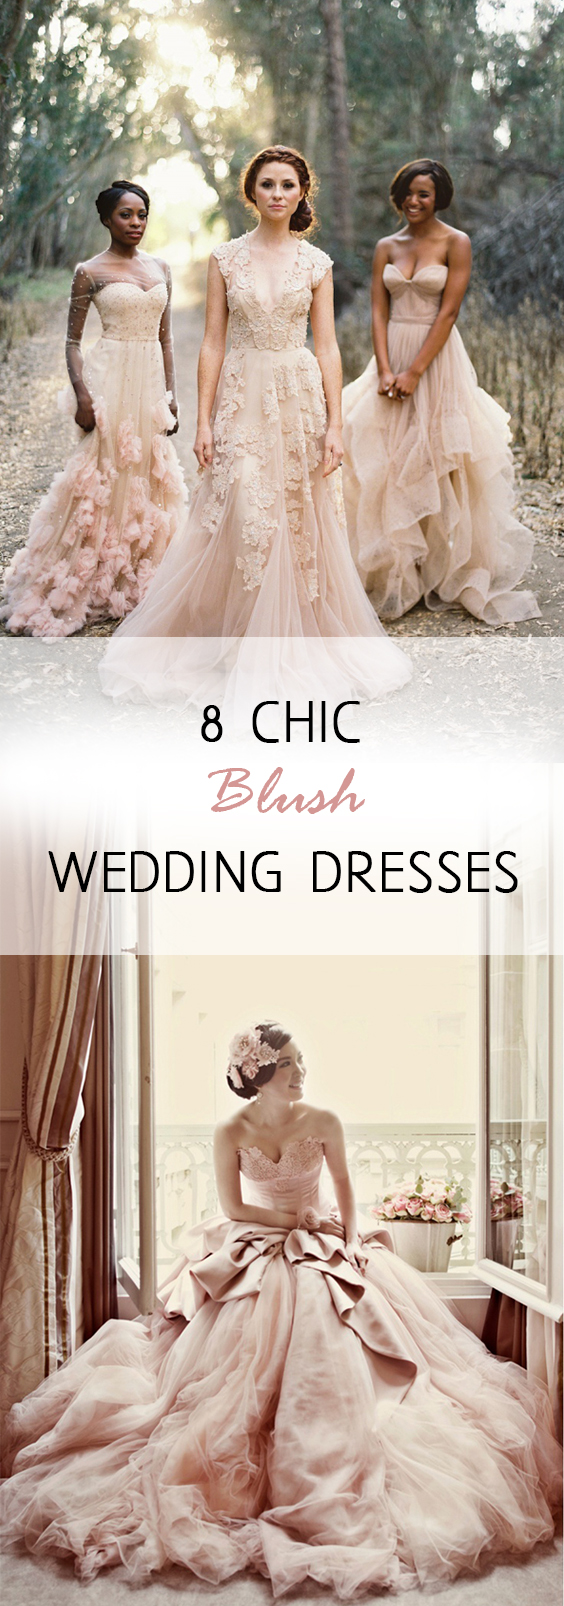 Blush Wedding Dresses, Wedding dresses, wedding dress inspiration, wedding dress hacks, wedding color schemes, wedding fashion, bridal fashion, popular pin, wedding hacks, wedding tips, dream weddings.